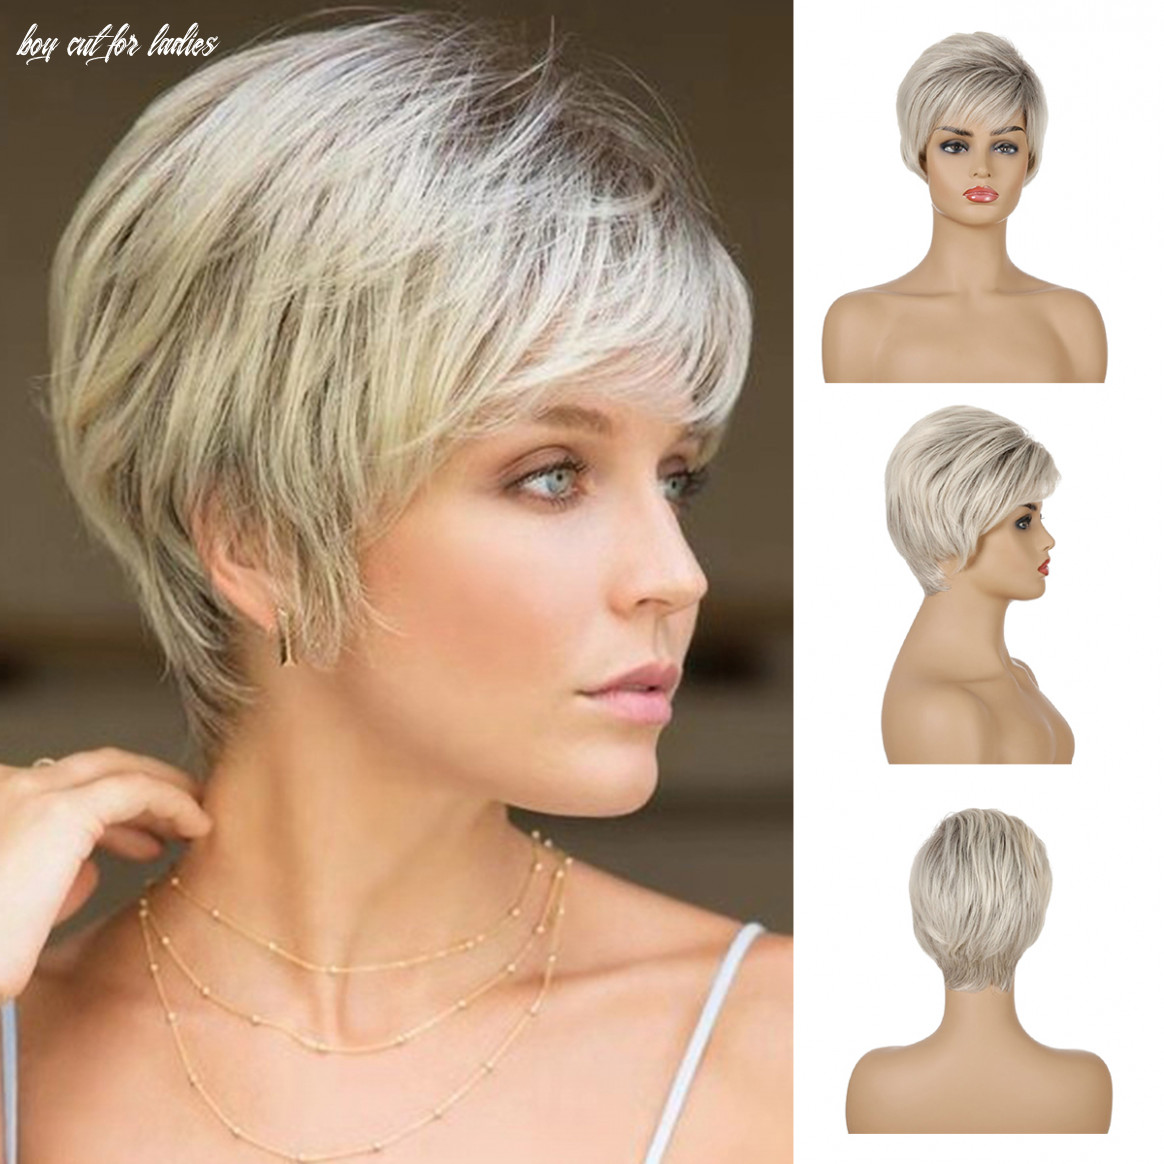 Details about short straight cropped wig layered pixie ladies boycut hairstyles blonde wigs us boy cut for ladies